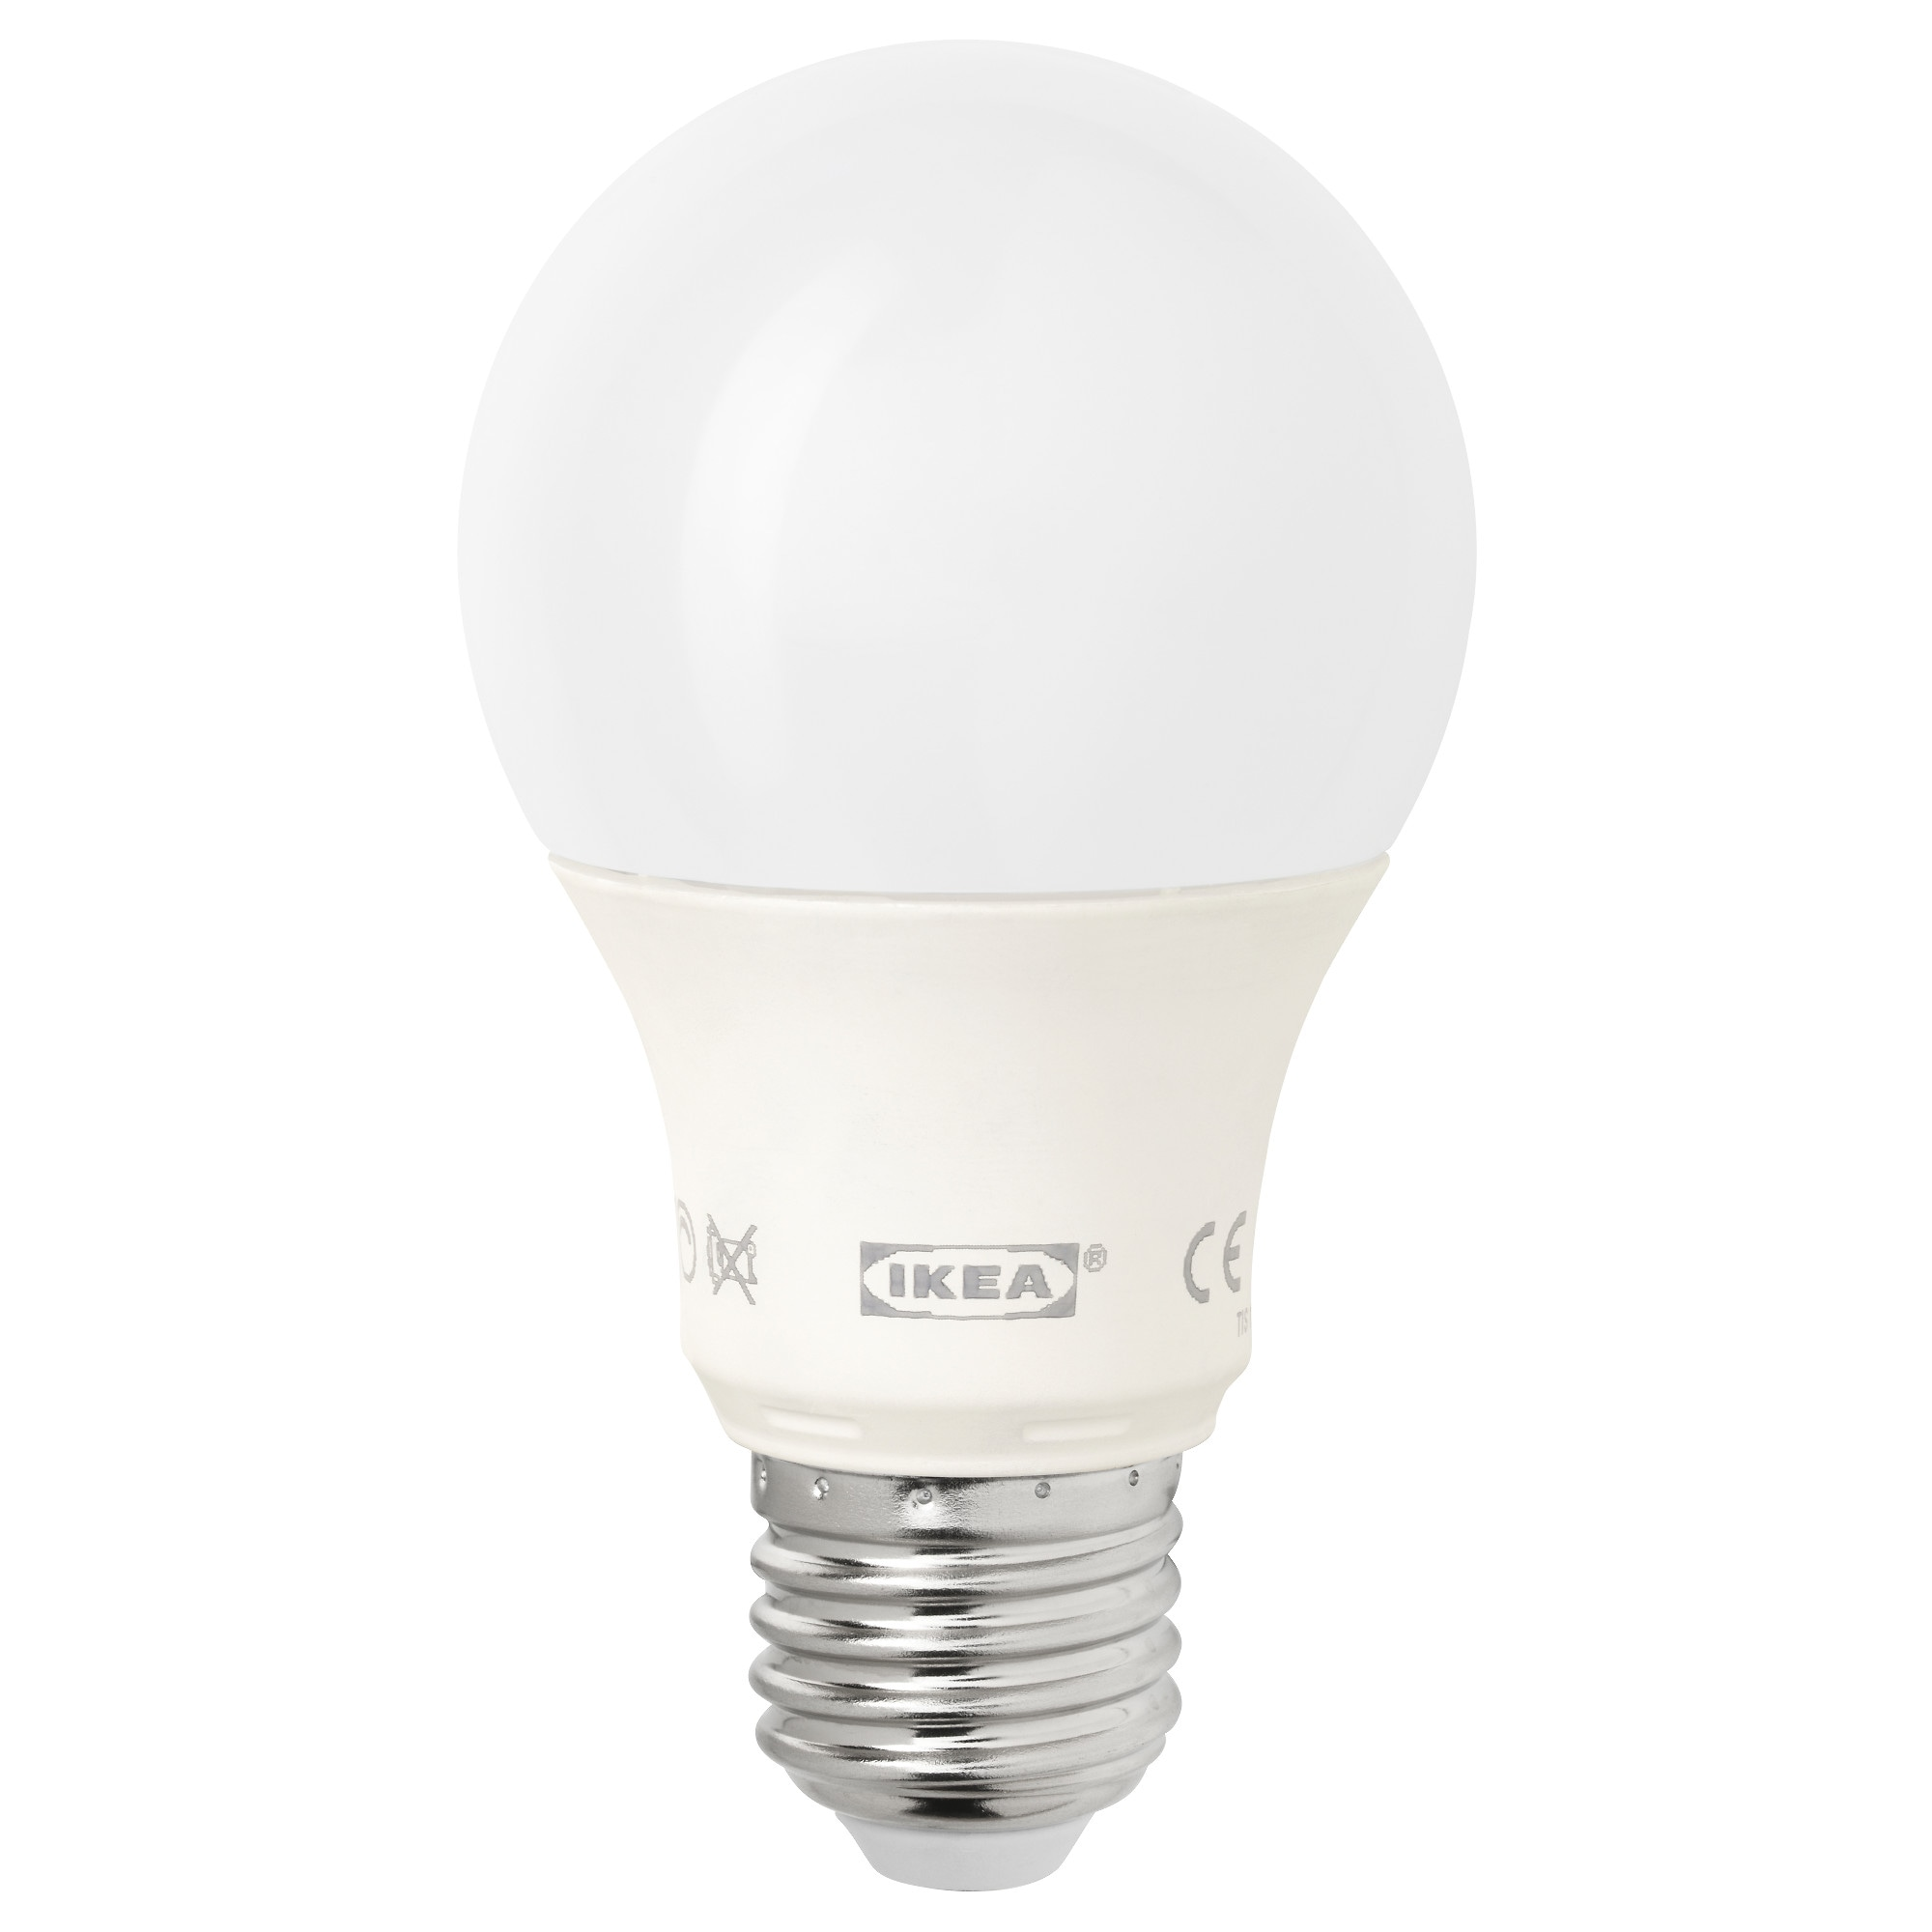 Light Bulbs & Accessories - Lighting - IKEA